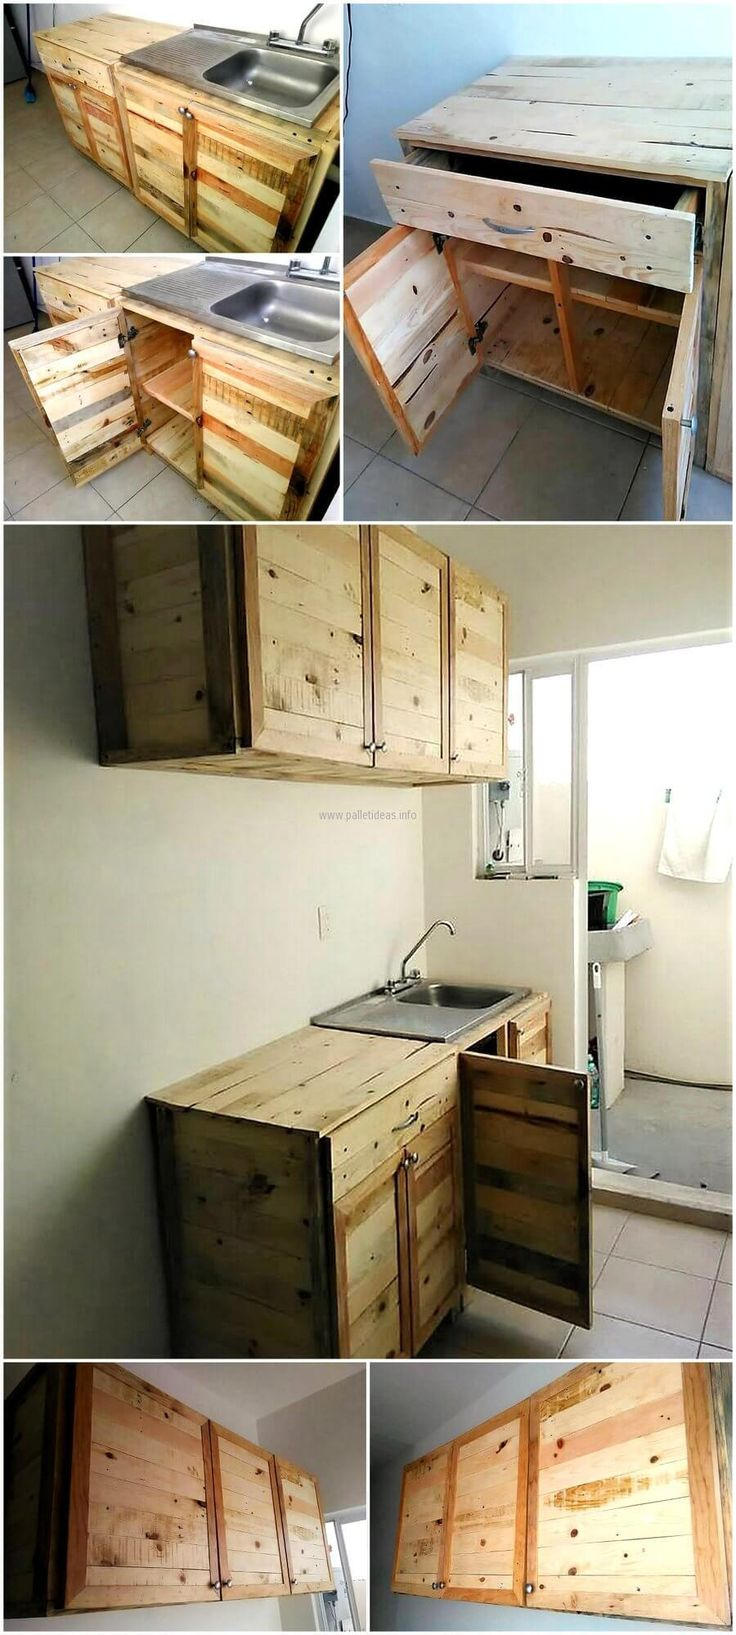 Kitchen cabinets for recycling - Wood Pallet Recycled Kitchen Cabinets